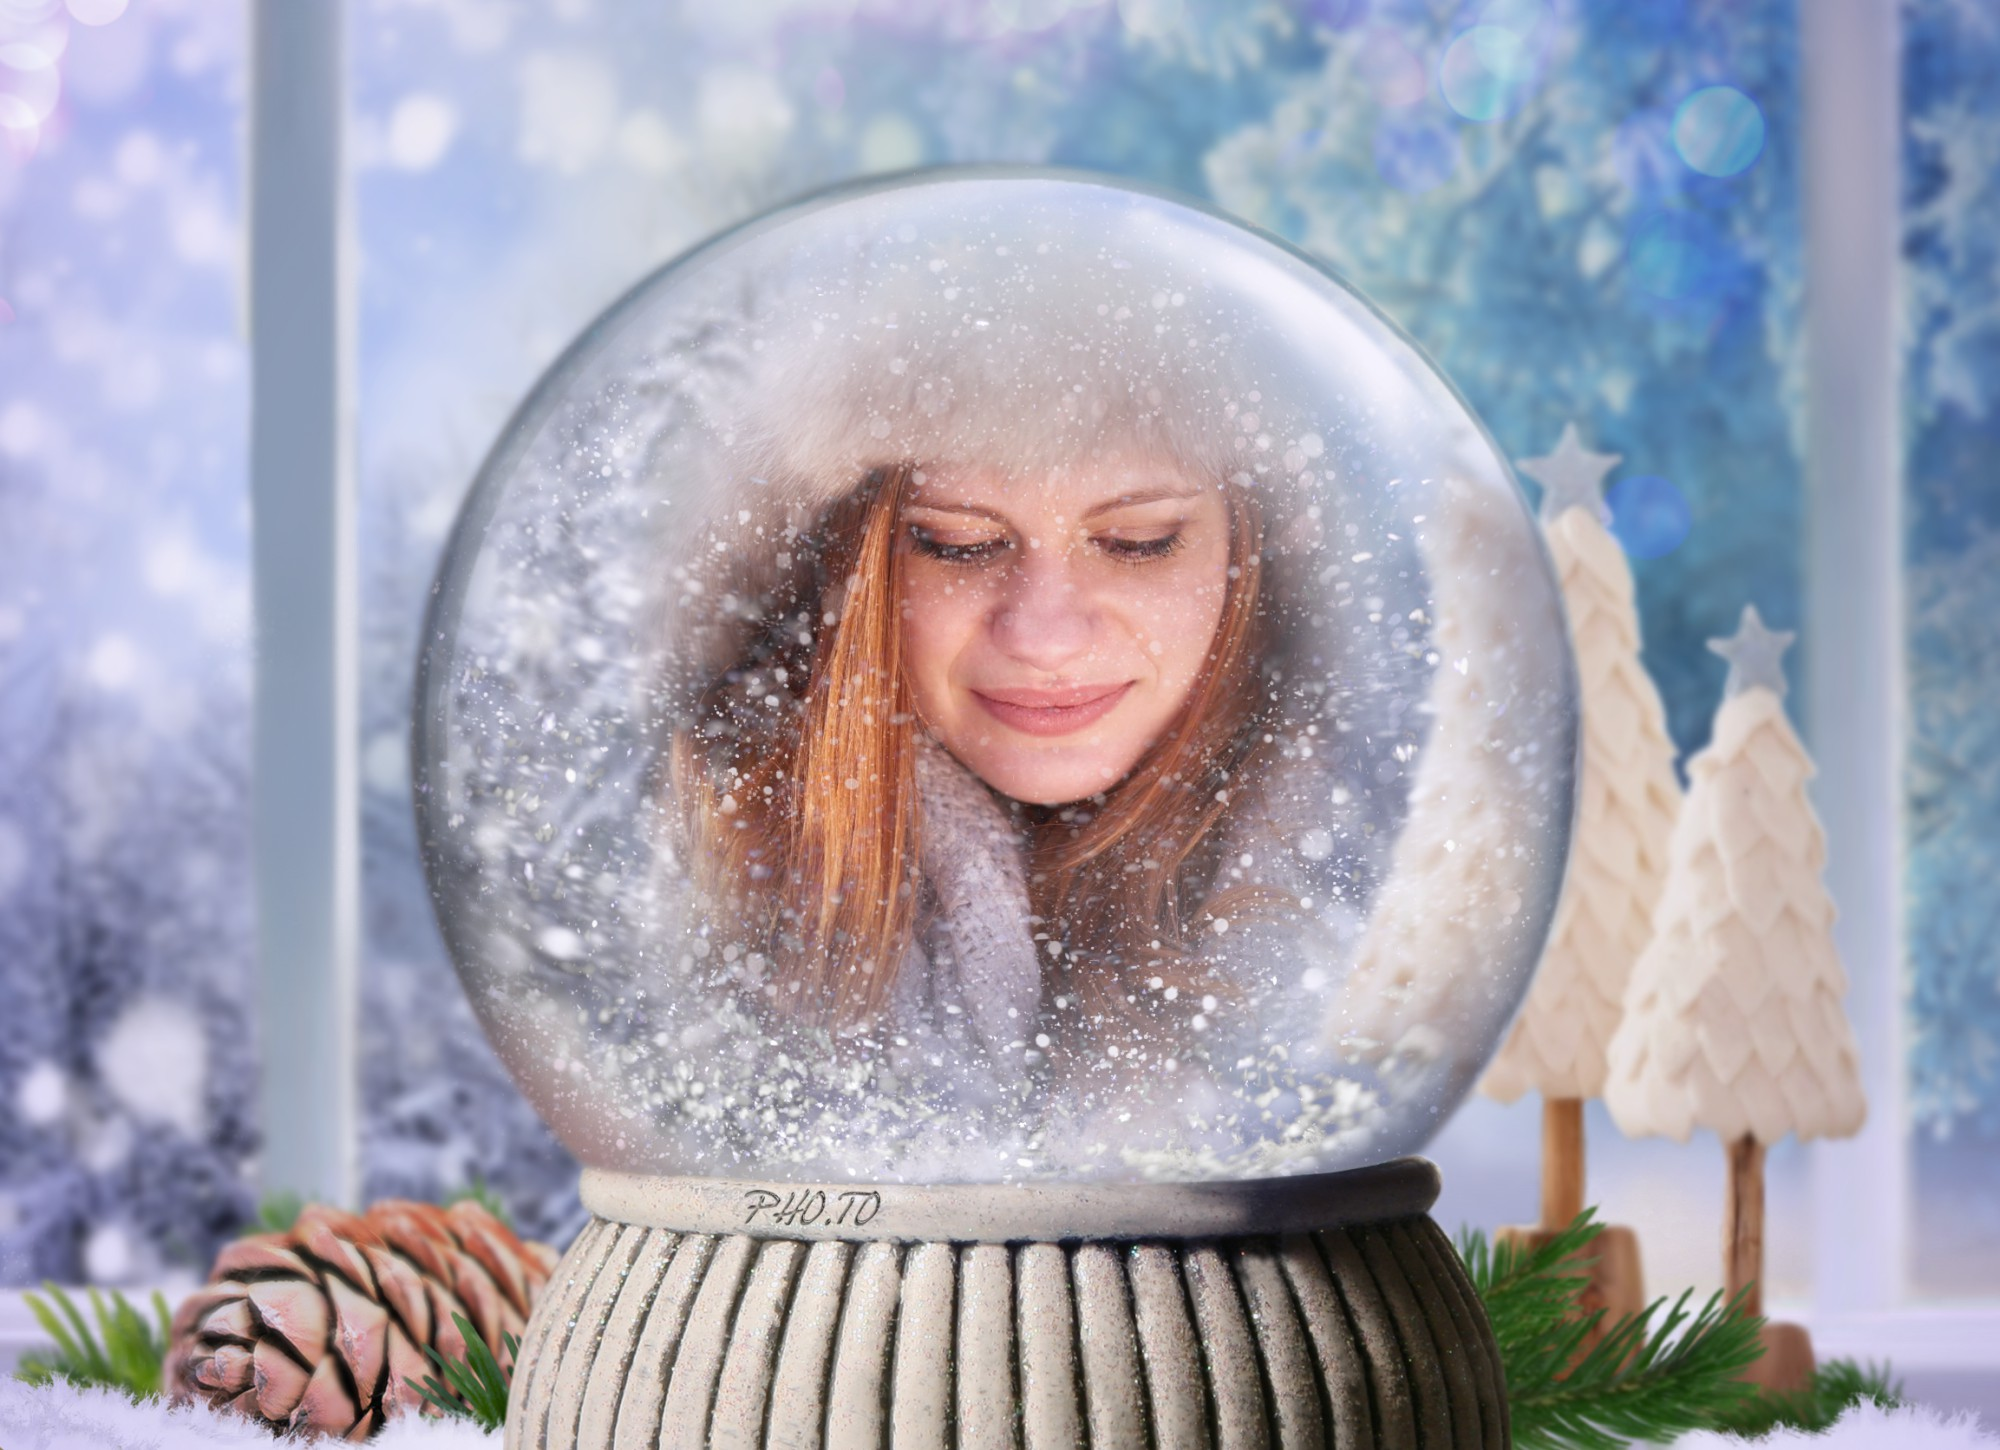 Girl's photo is put in a beautiful snow globe online